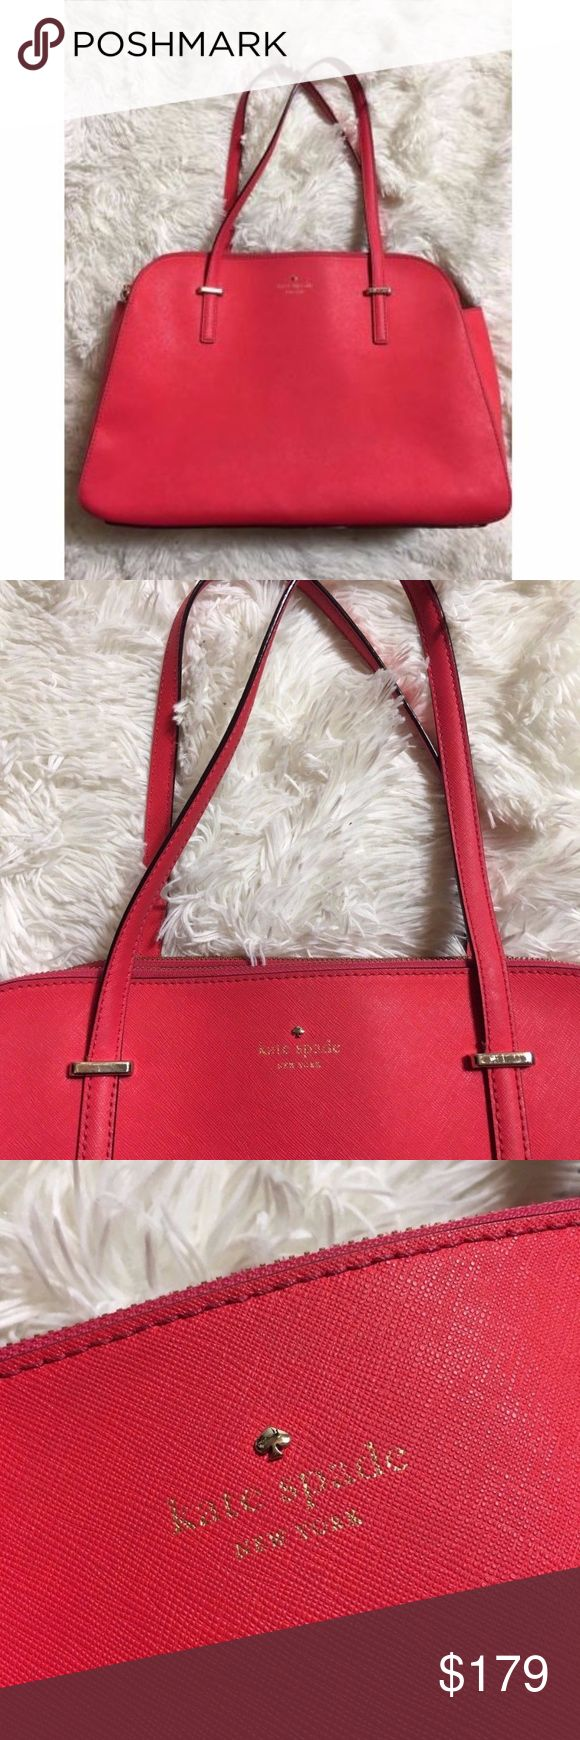 Kate Spade Pink Purse Leather Large Bag Satchel Kate Spade Pink Purse Leather Large Bag Satchel Tote Small Laptop Carrier There is one flaw in the corner kate spade Bags Totes